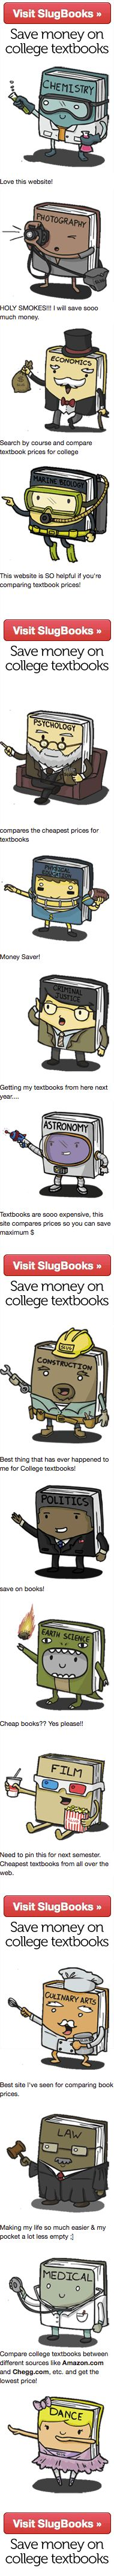 Slugbooks.com- takes your classes and your required texts and compares the books from all of the major book sites in one spot.